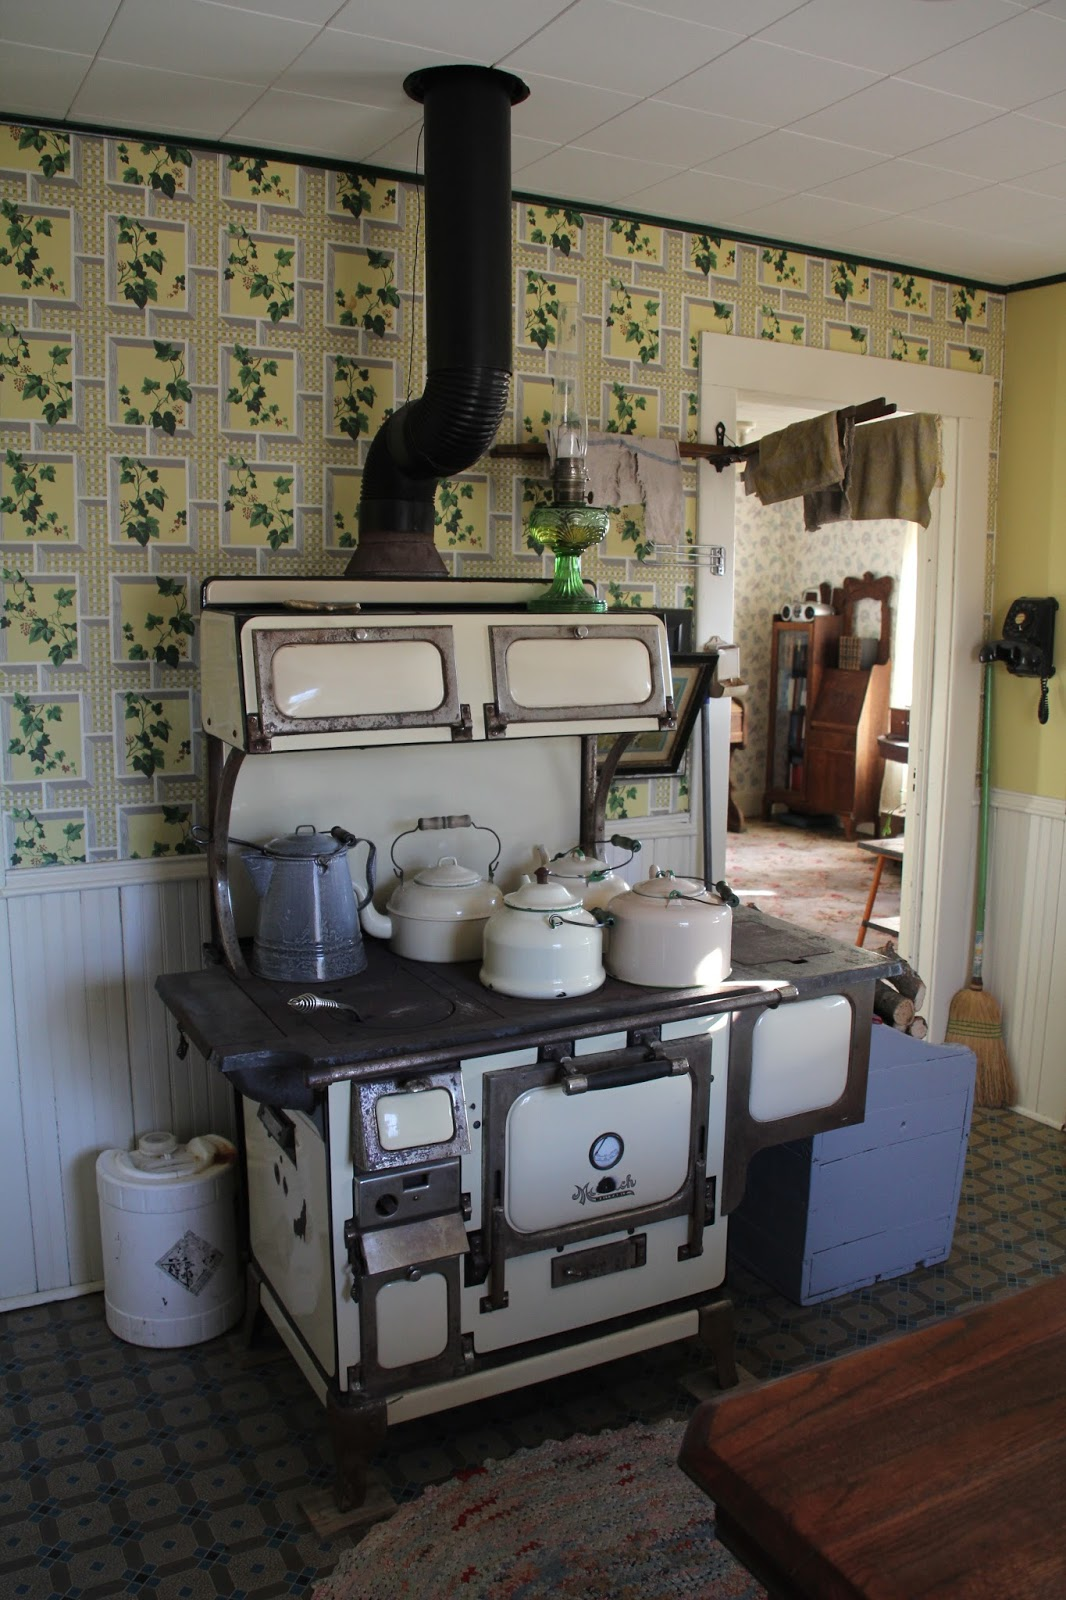 Kitchen Cook Stoves Rugs Wood Cookstove Cooking A Blog Reader S I Tim Monarch In Central Minnesota Range Is Model 272at Serial P 3077 From The 20 Or 30 Were Made By